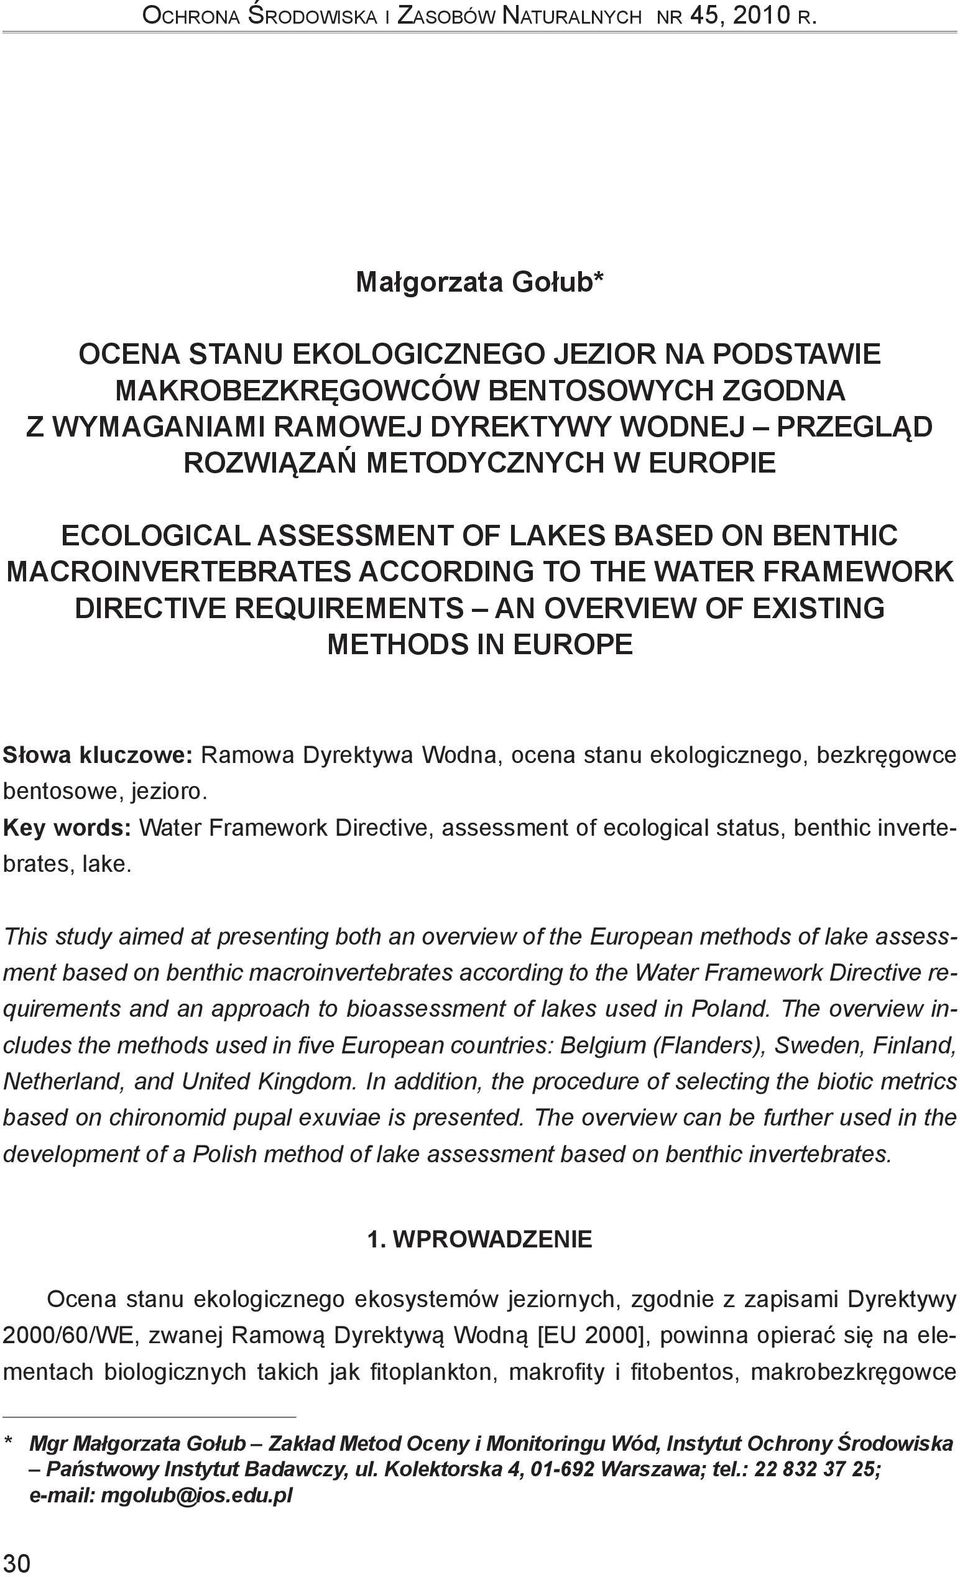 assessment of lakes based on benthic macroinvertebrates according to the Water Framework Directive requirements an overview of existing methods in Europe Słowa kluczowe: Ramowa Dyrektywa Wodna, ocena